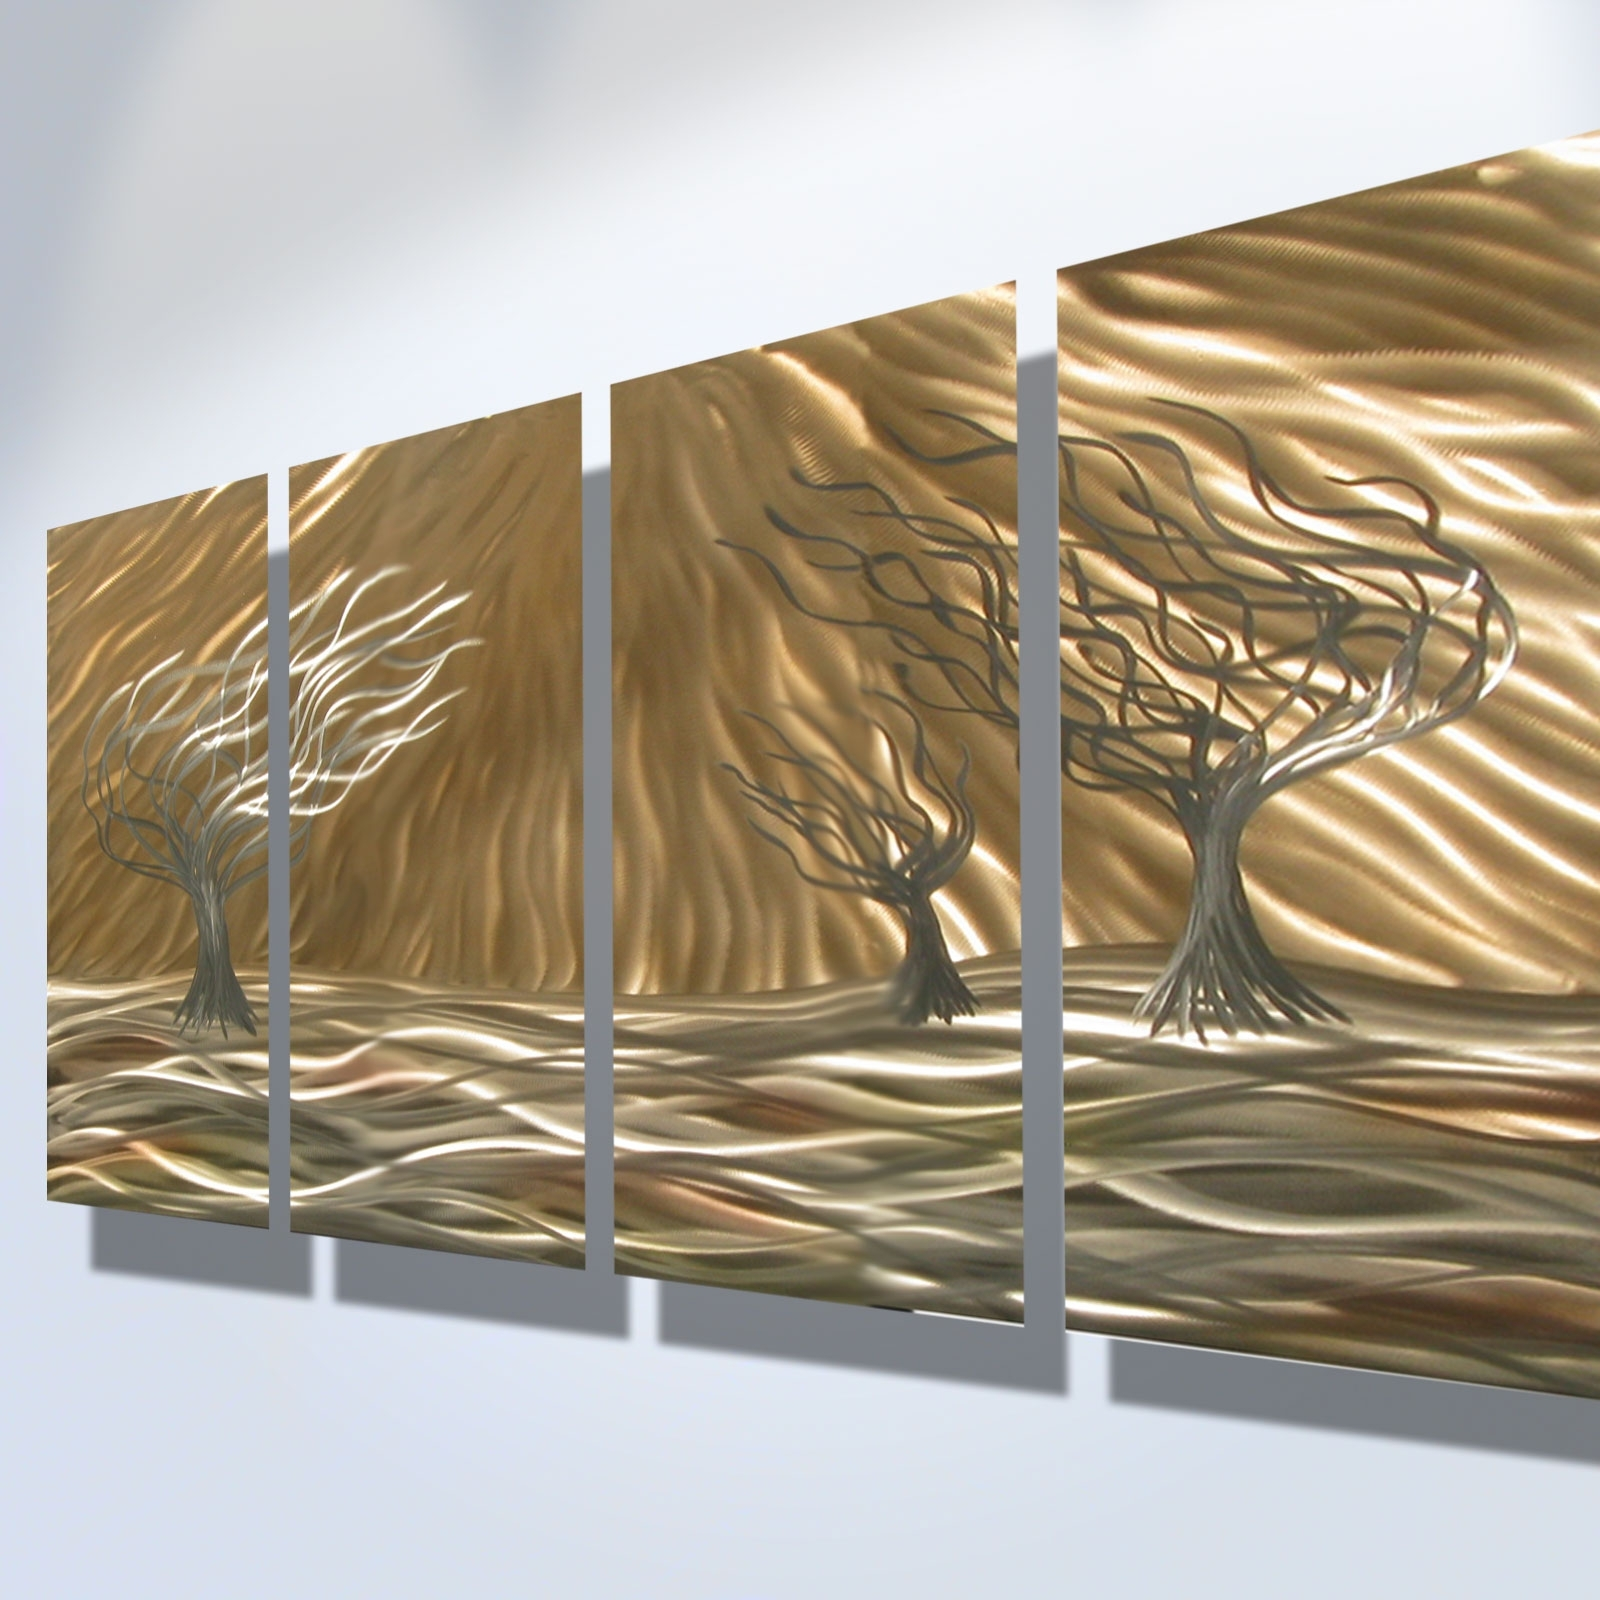 3 Trees 4 Panel – Abstract Metal Wall Art Contemporary Modern Decor With Regard To Most Recently Released Metal Wall Art Decors (View 15 of 15)